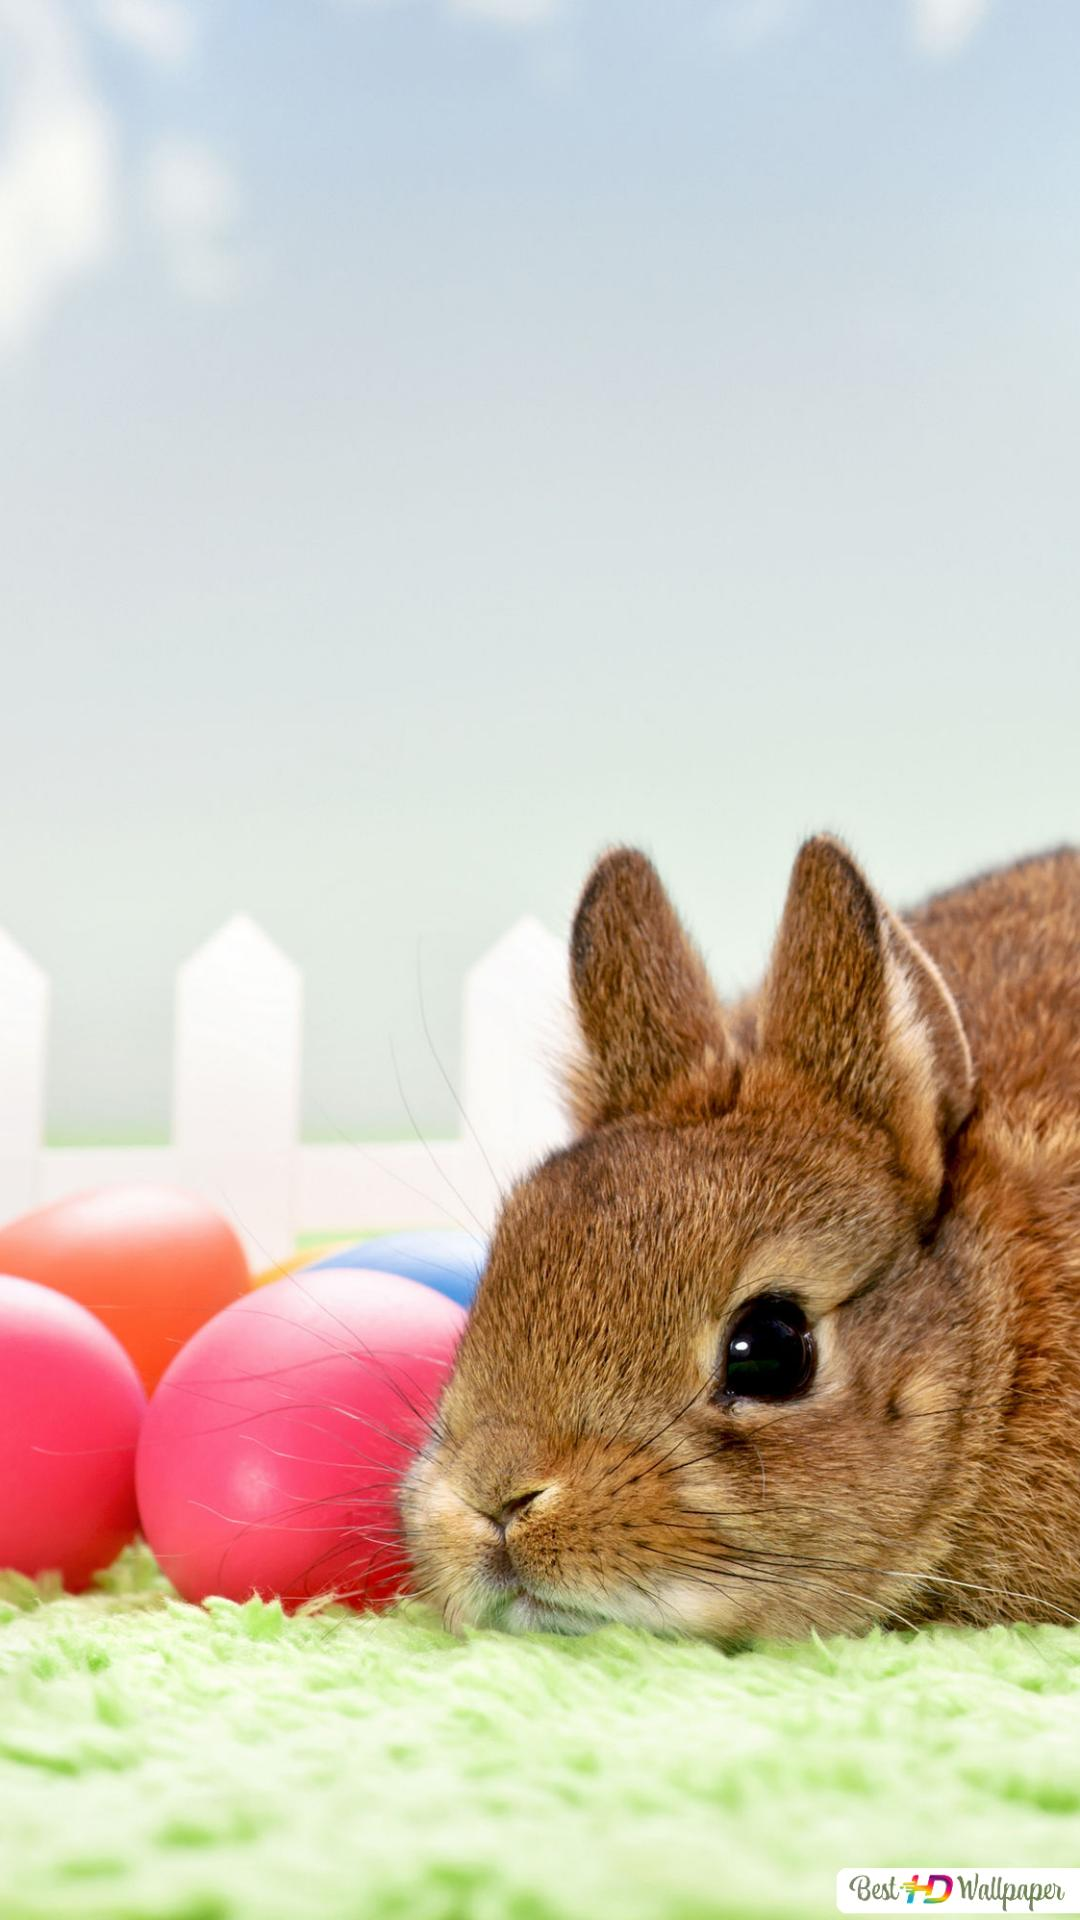 Brown Adorable Bunny And A Bunch Of Tulips With Easter Eggs Hd